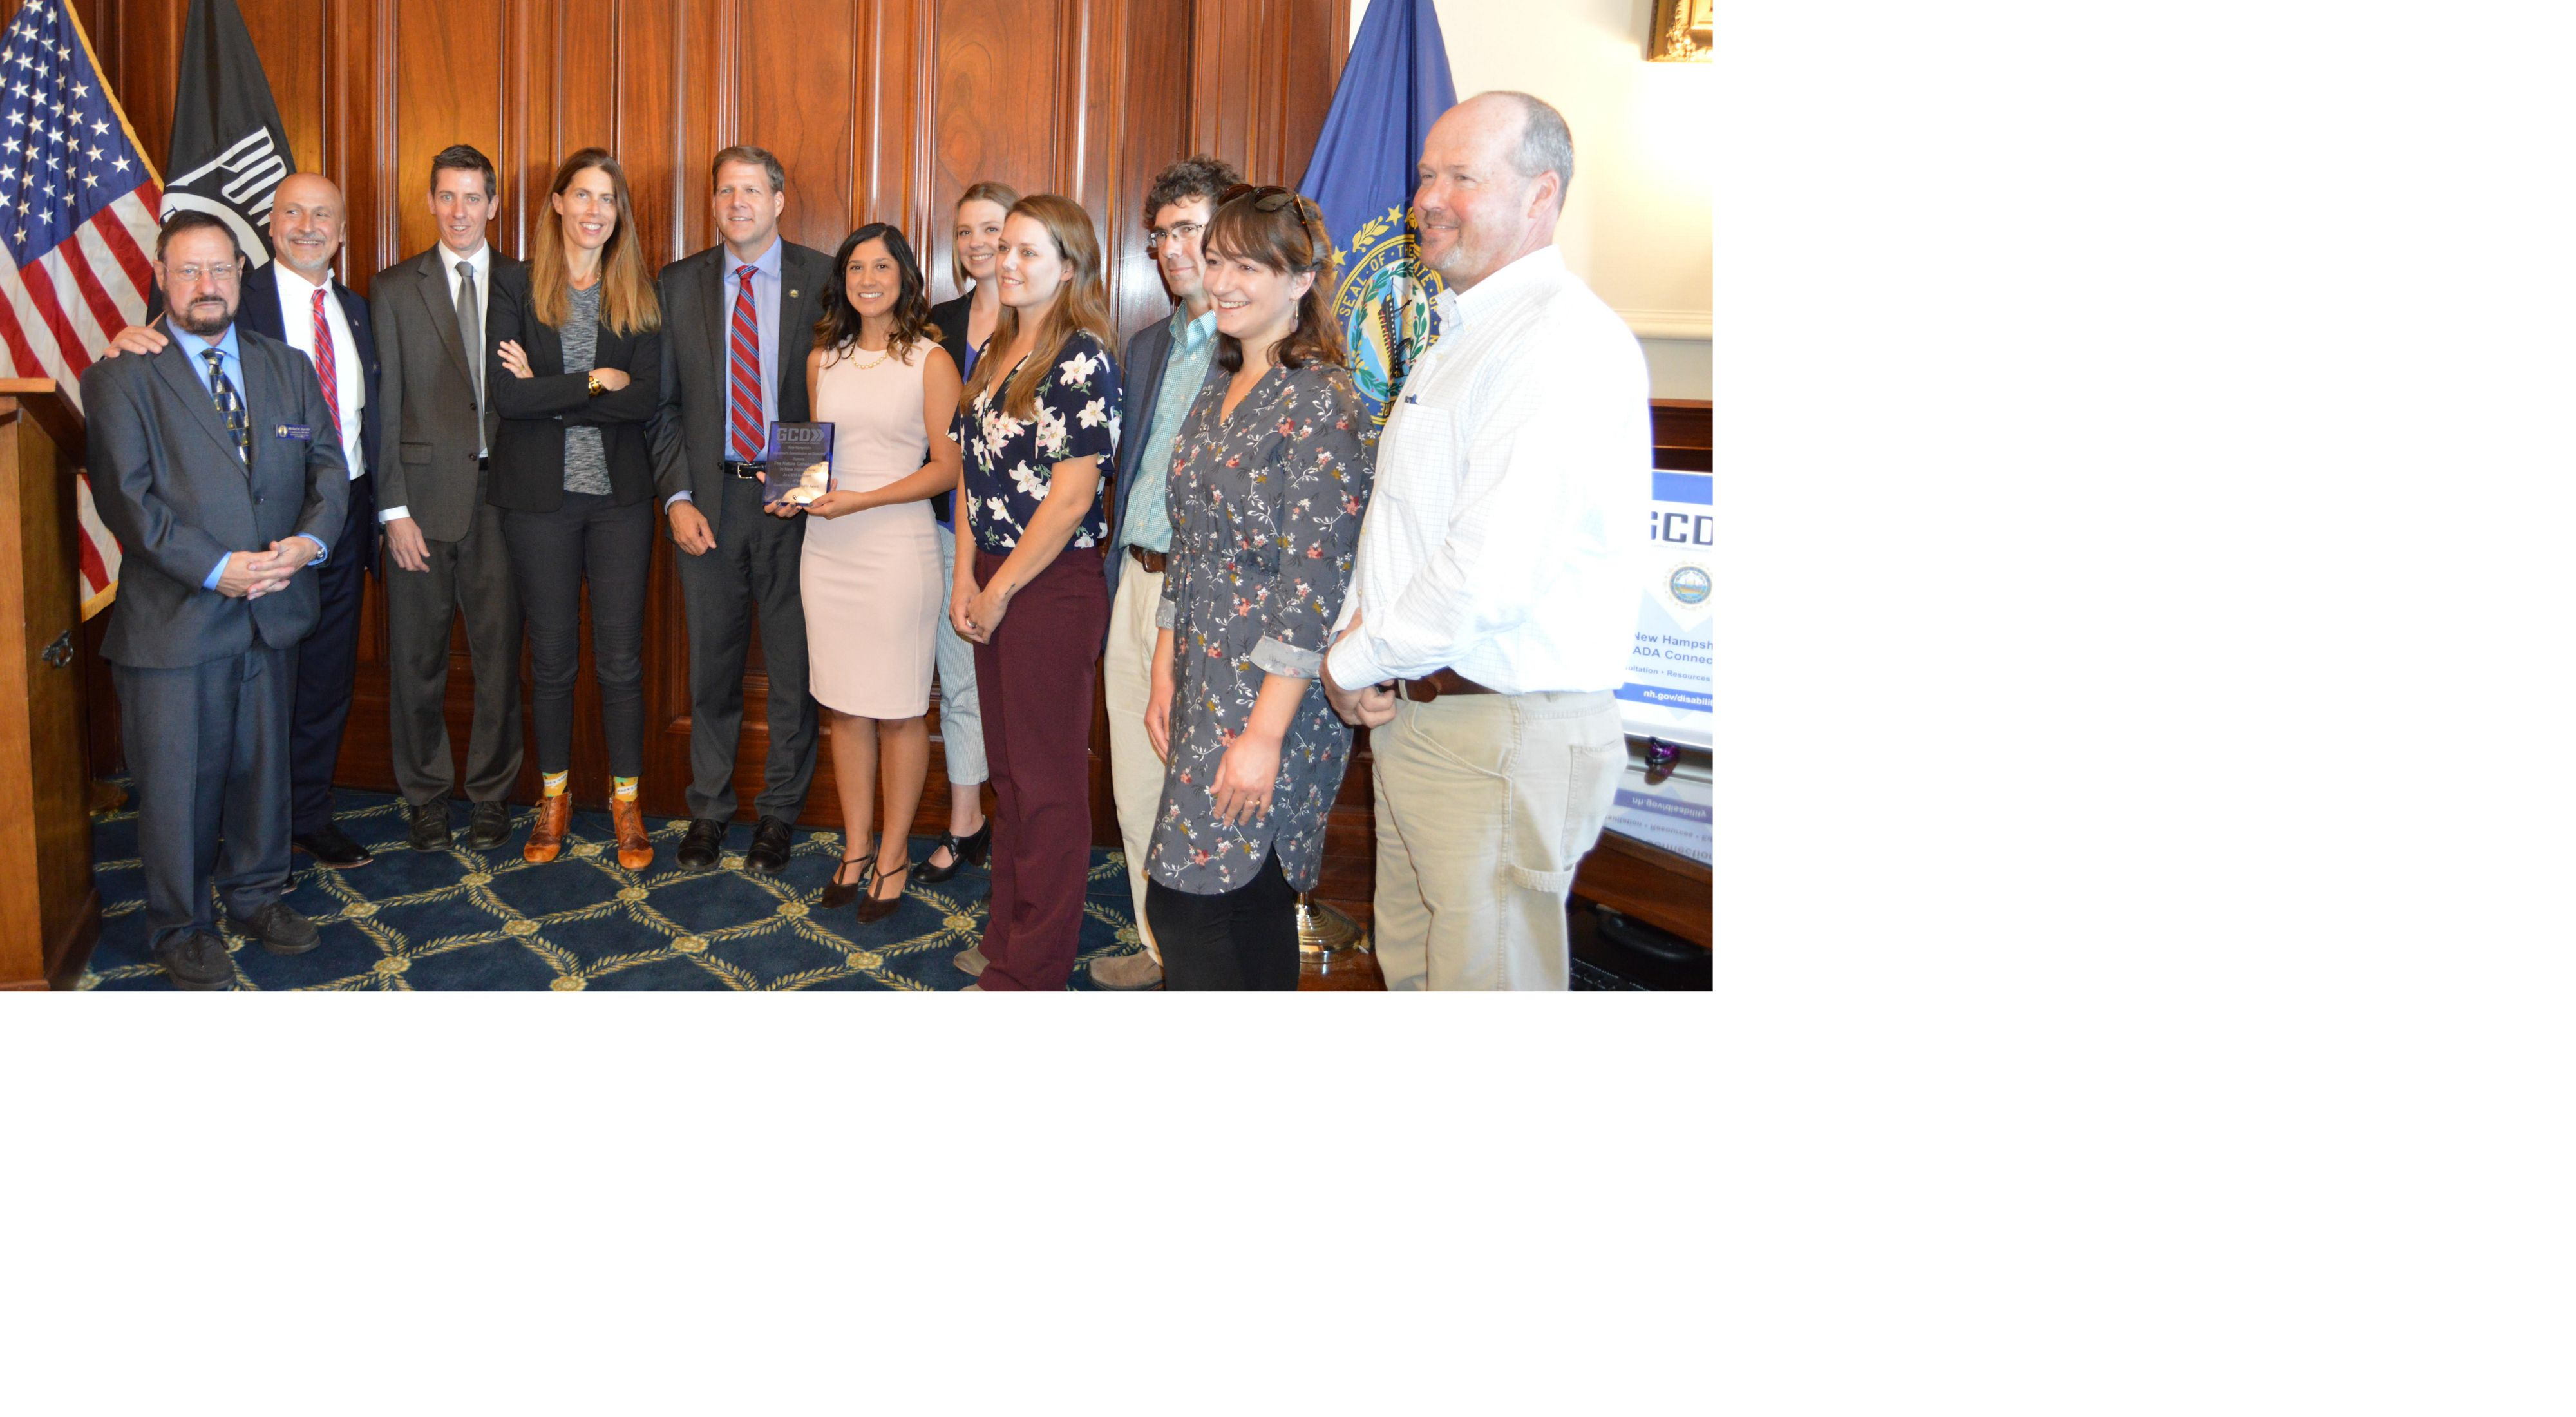 Staff from The Nature Conservancy in New Hampshire accept the 2019 Governor's Disability Award from Governor Chris Sununu.